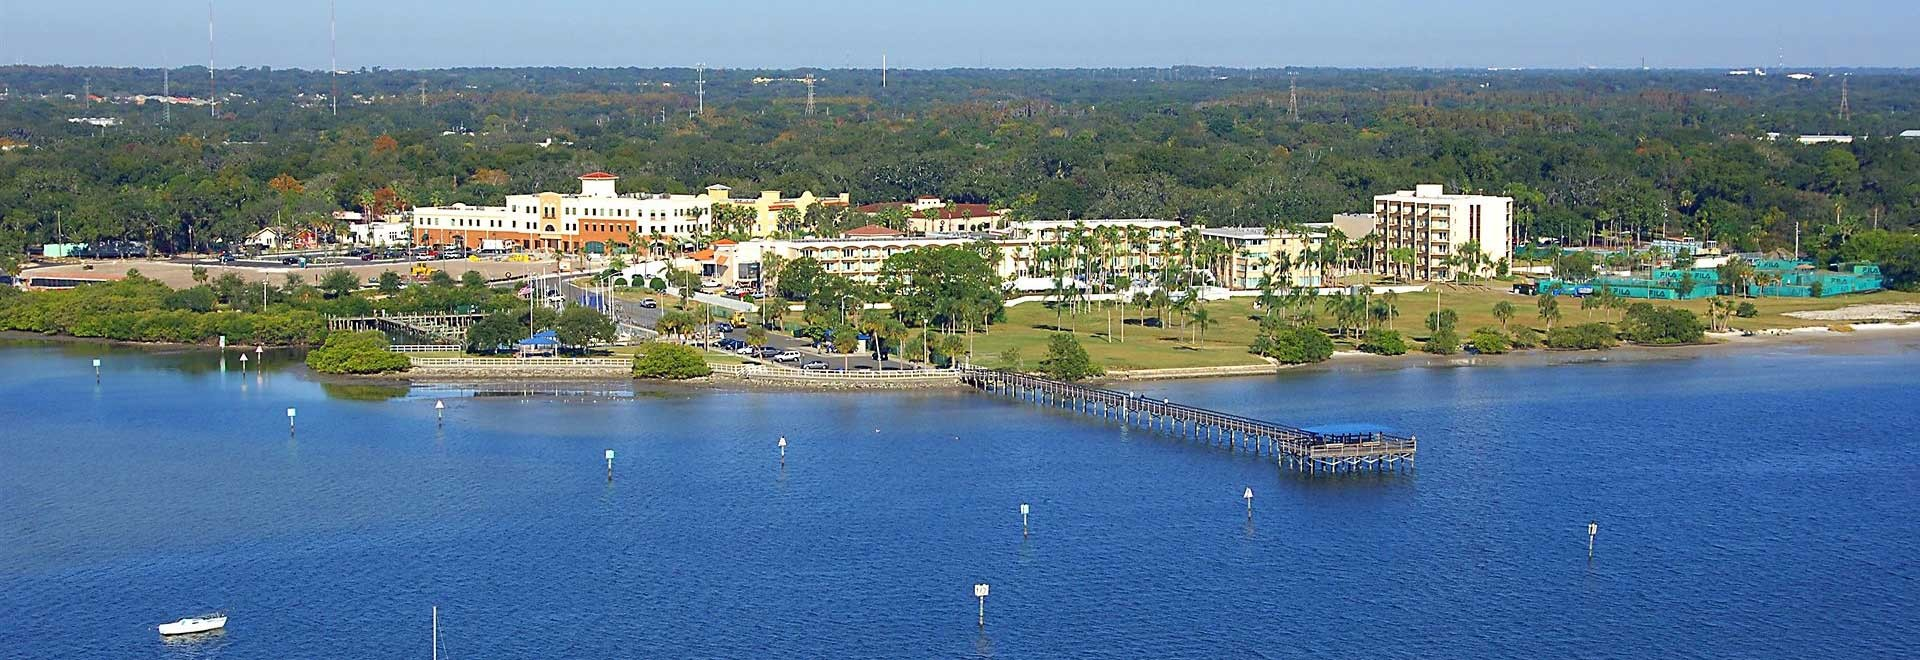 Safety Harbor Resort and Spa, Florida - Book. Travel. Play.